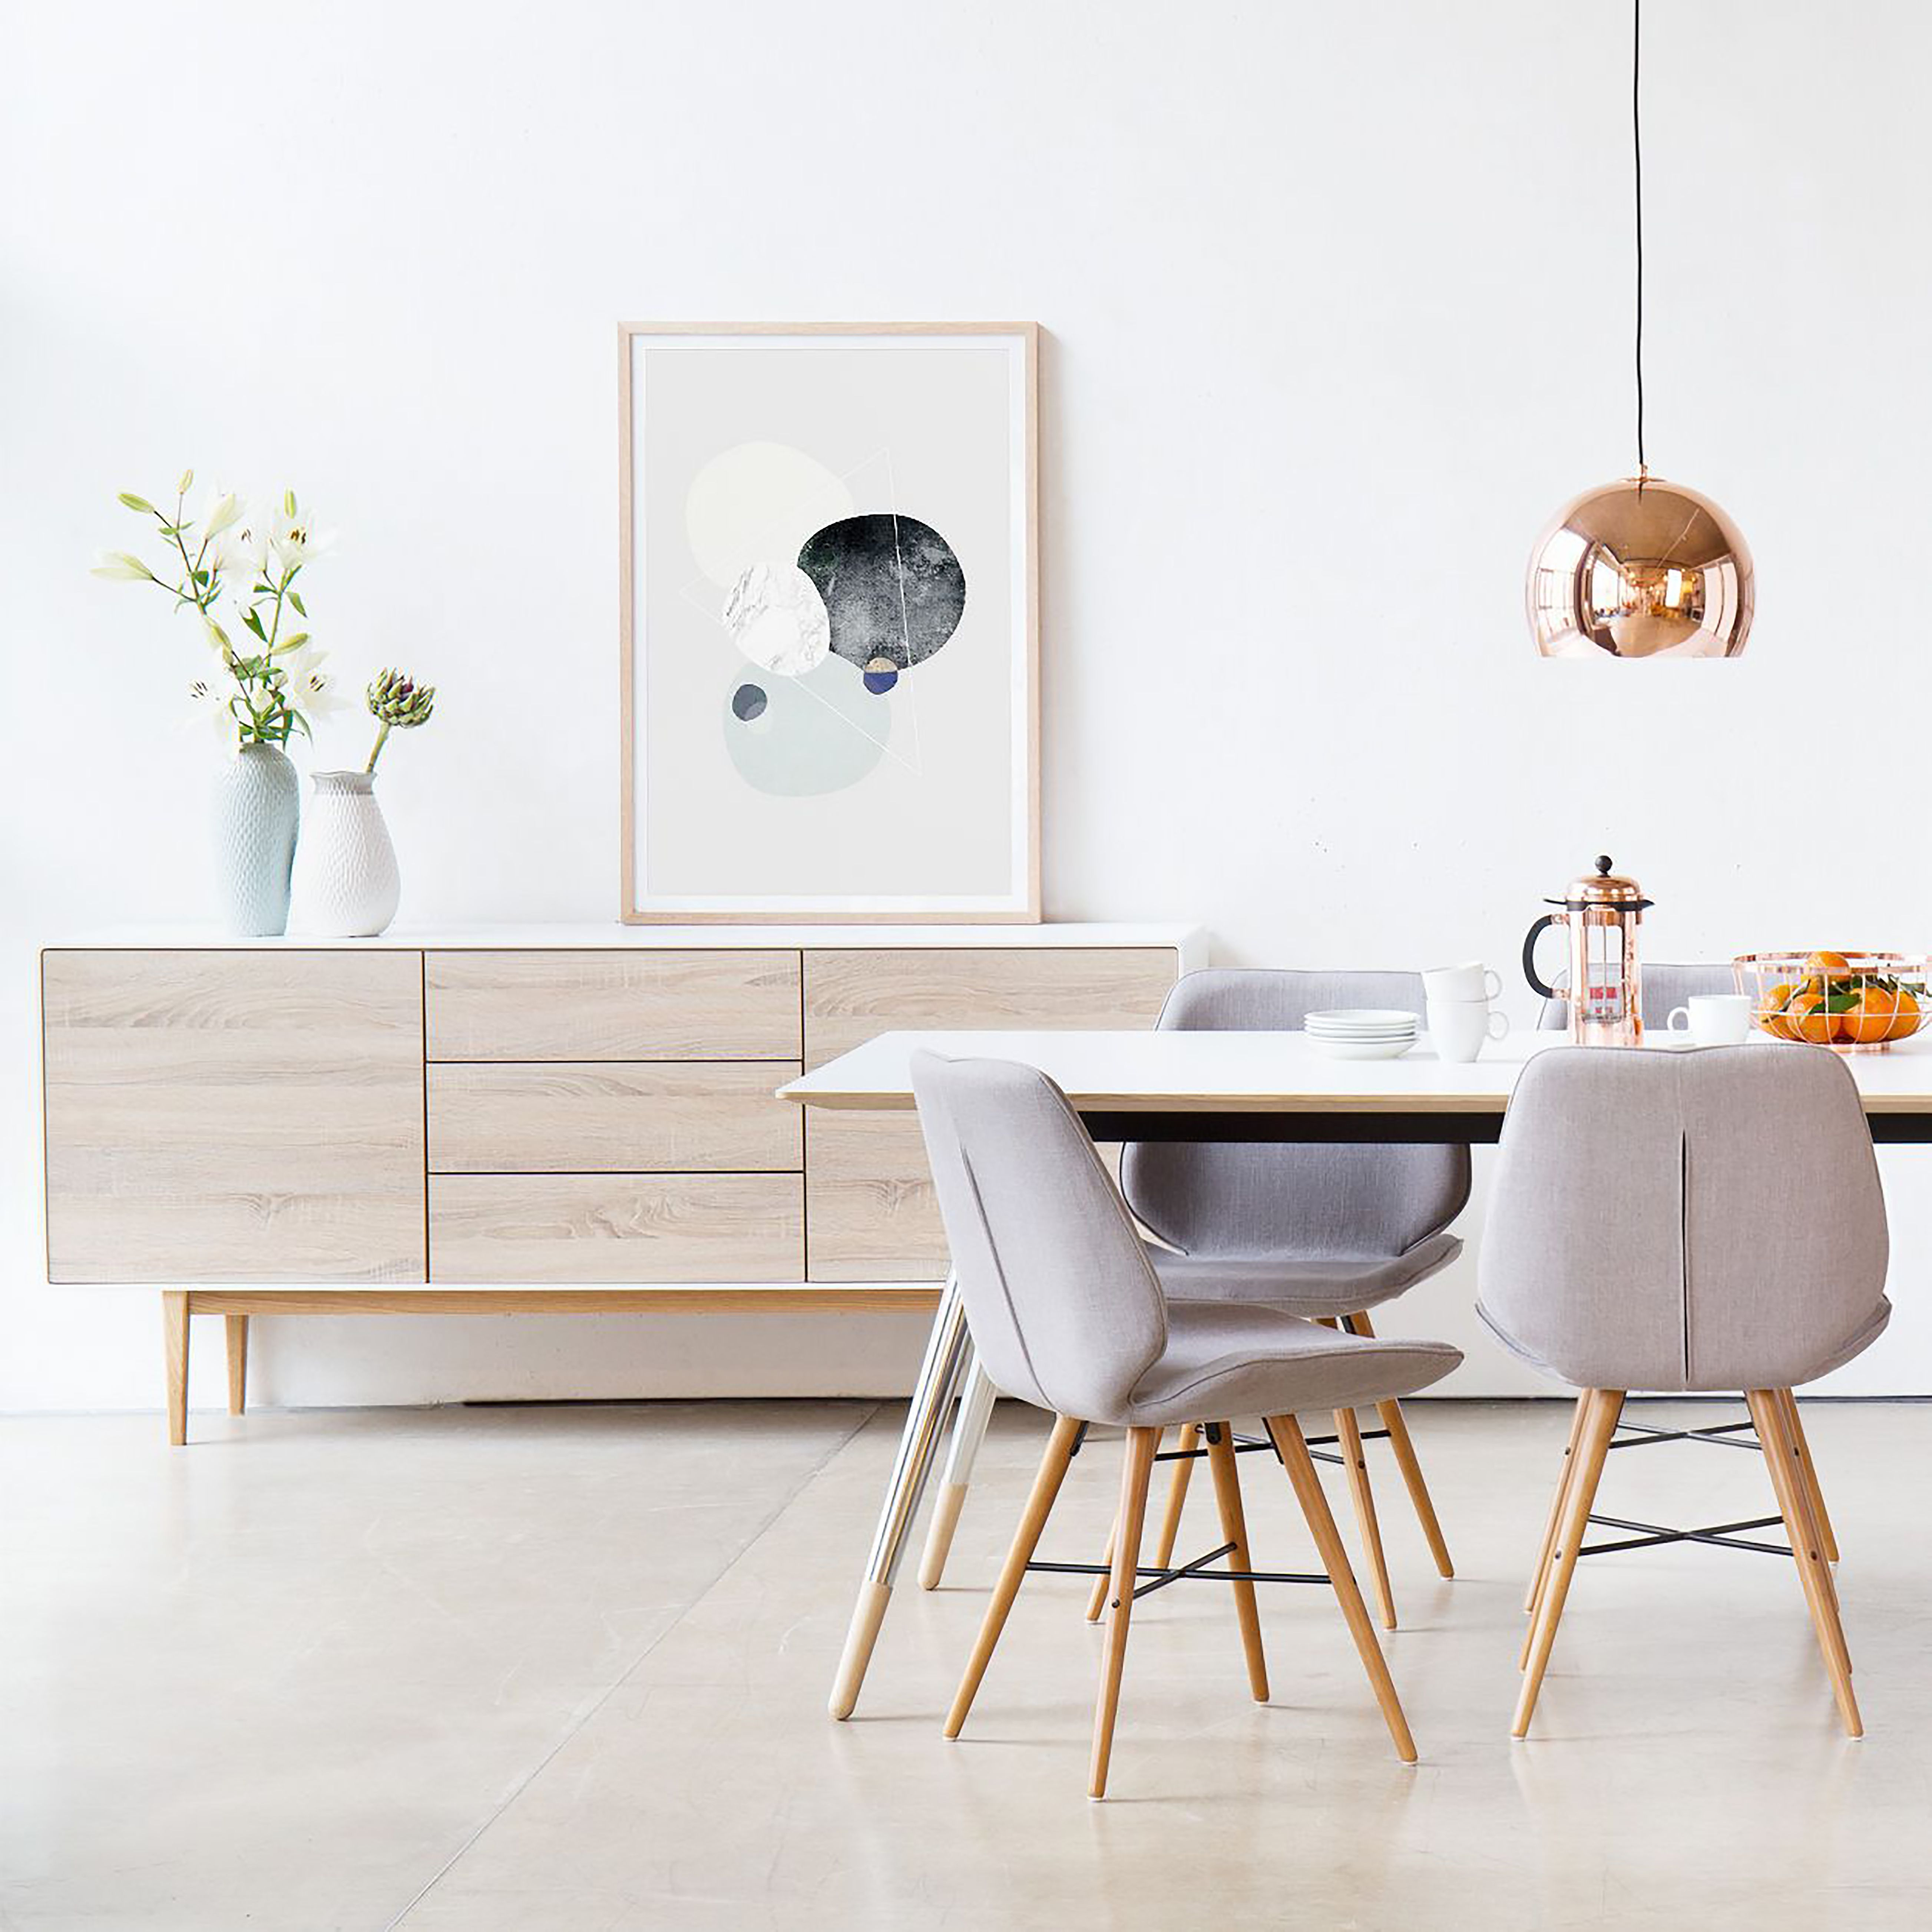 Home24 Scandinavian Style Furniture Mindsparkle Mag Dining Room Console Dining Room Accents Dining Room Style